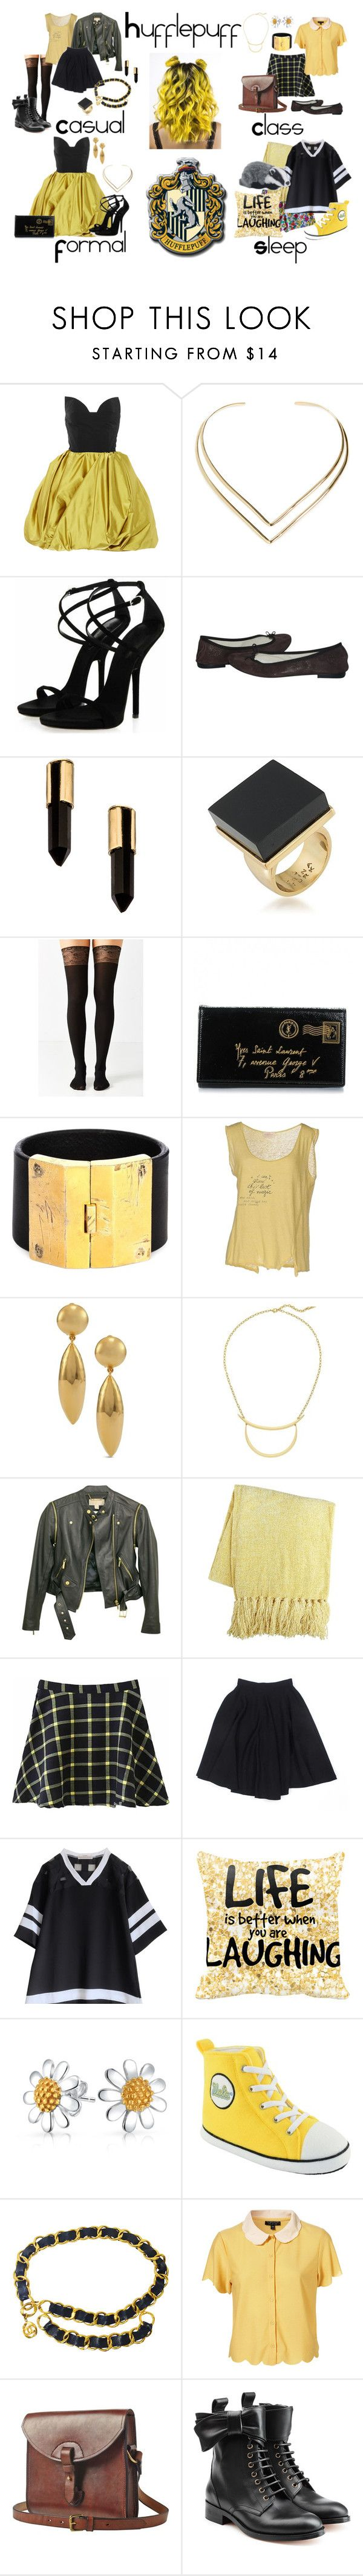 """Different Hufflepuff Outfits 2"" by pie-epic ❤ liked on Polyvore featuring Oscar de la Renta, Natalie B, Repetto, Serefina, Trina Turk, Urban Outfitters, Yves Saint Laurent, Parts of Four, Momonì and Chico's"